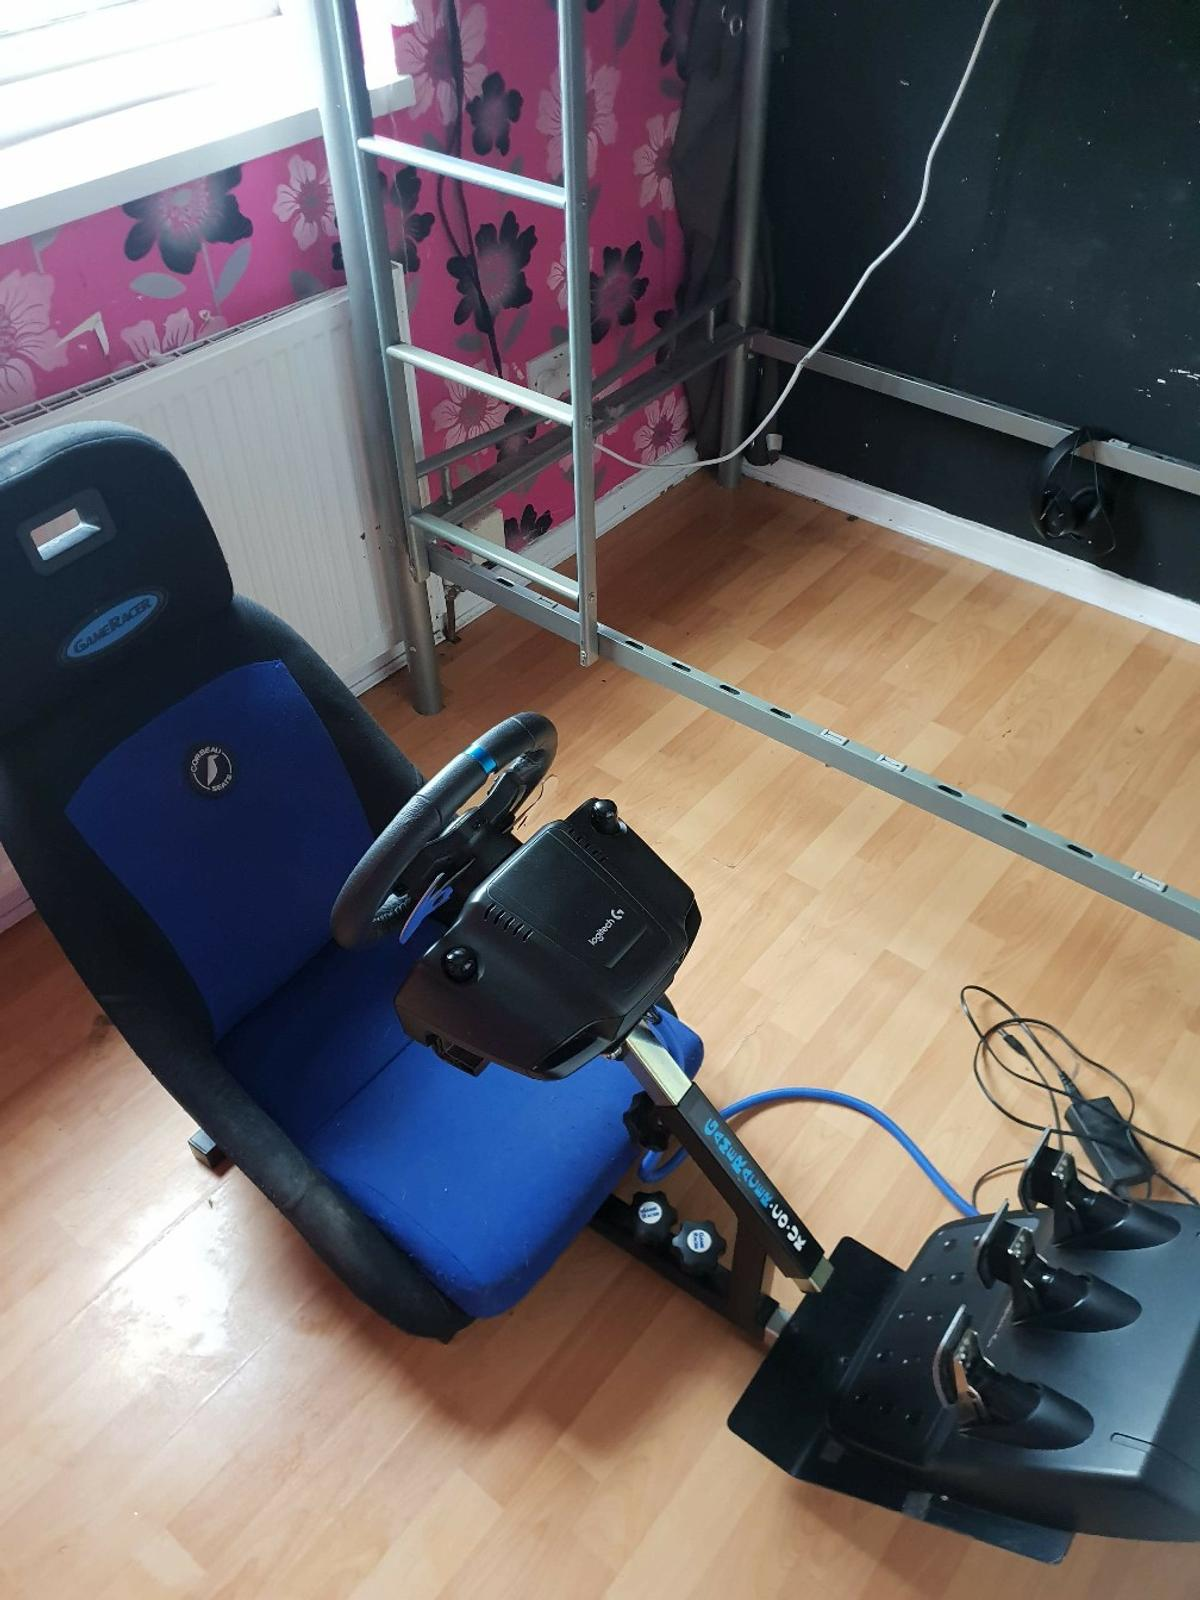 Logitech G29 driving force set up PS4 in PR26 Ribble for